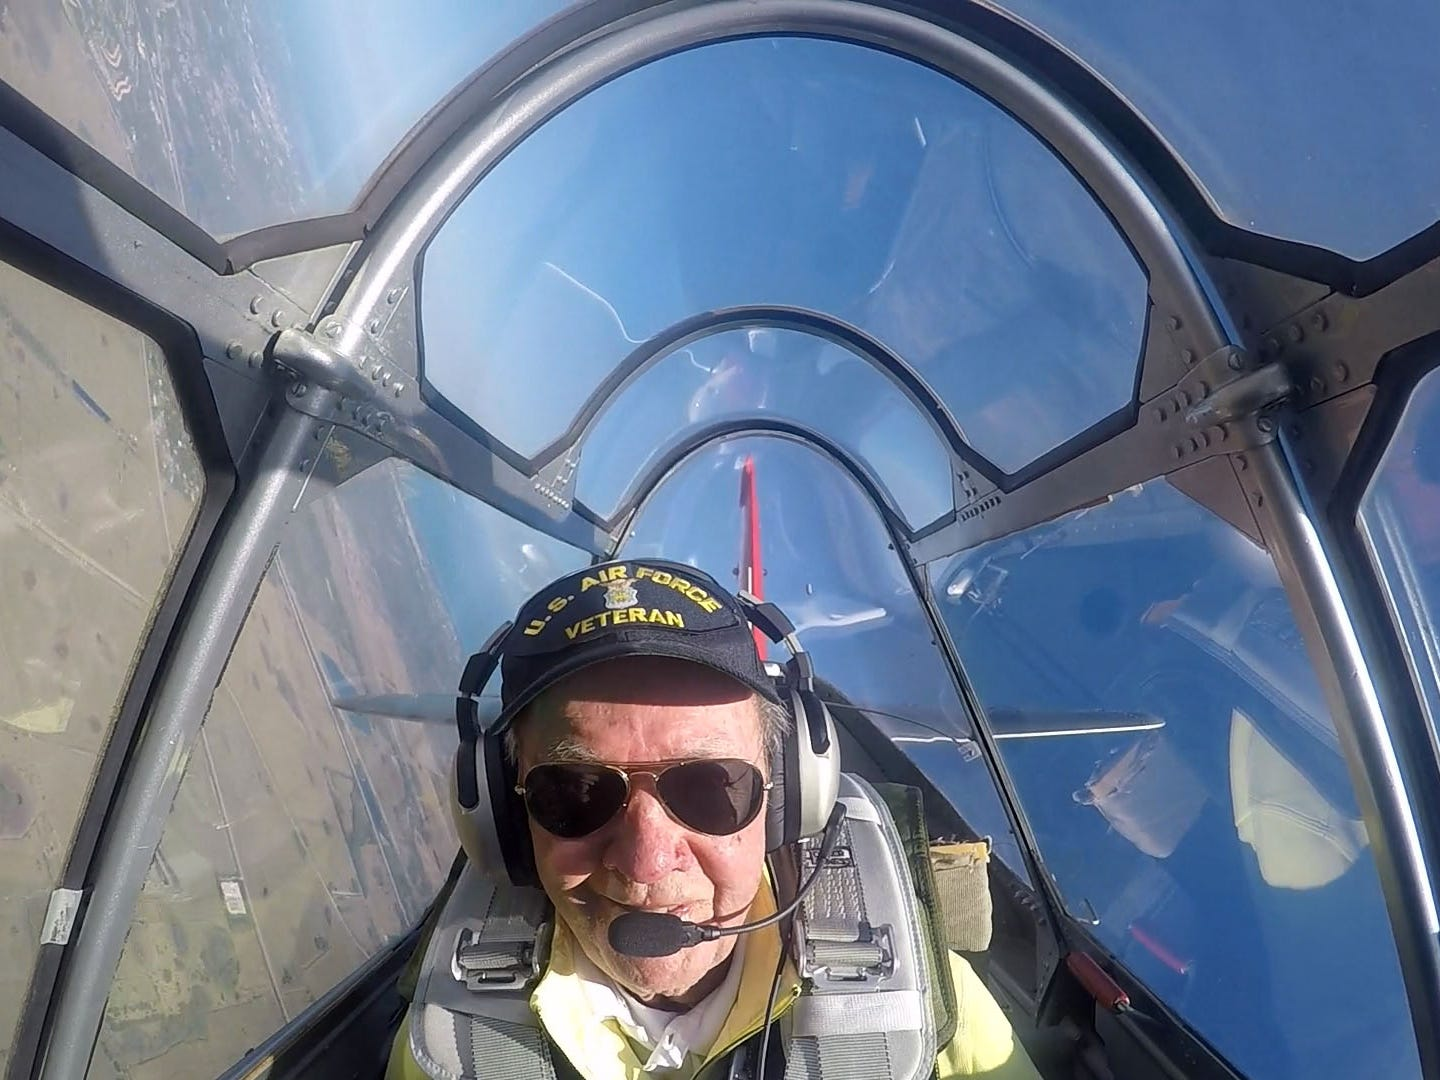 """""""Flying stays with you. Like you learn how to ride a bicycle, you never forget,"""" said retired Air Force 1st Lt. Alyn Bell, a seasonal resident of Palm City, who celebrated his 94th birthday a day early by taking a ride in Dr. Shawn Engebretsen's Navy SNJ-6 World War II trainer plane, on March 18, 2018, flying over Martin County. Bell flew a B-25 Mitchell in World War II while stationed in Guadalcanal, New Guinea and the Philippines over three years, beginning in December 1944. The veteran flew in 24 combat missions, escorted the chorus line of the """"Oklahoma!"""" musical for a United Service Organizations performance and safely landed a bomber that ran out of gas in the jungle of New Guinea. """"Everybody walked away without a scratch,"""" Bell said."""